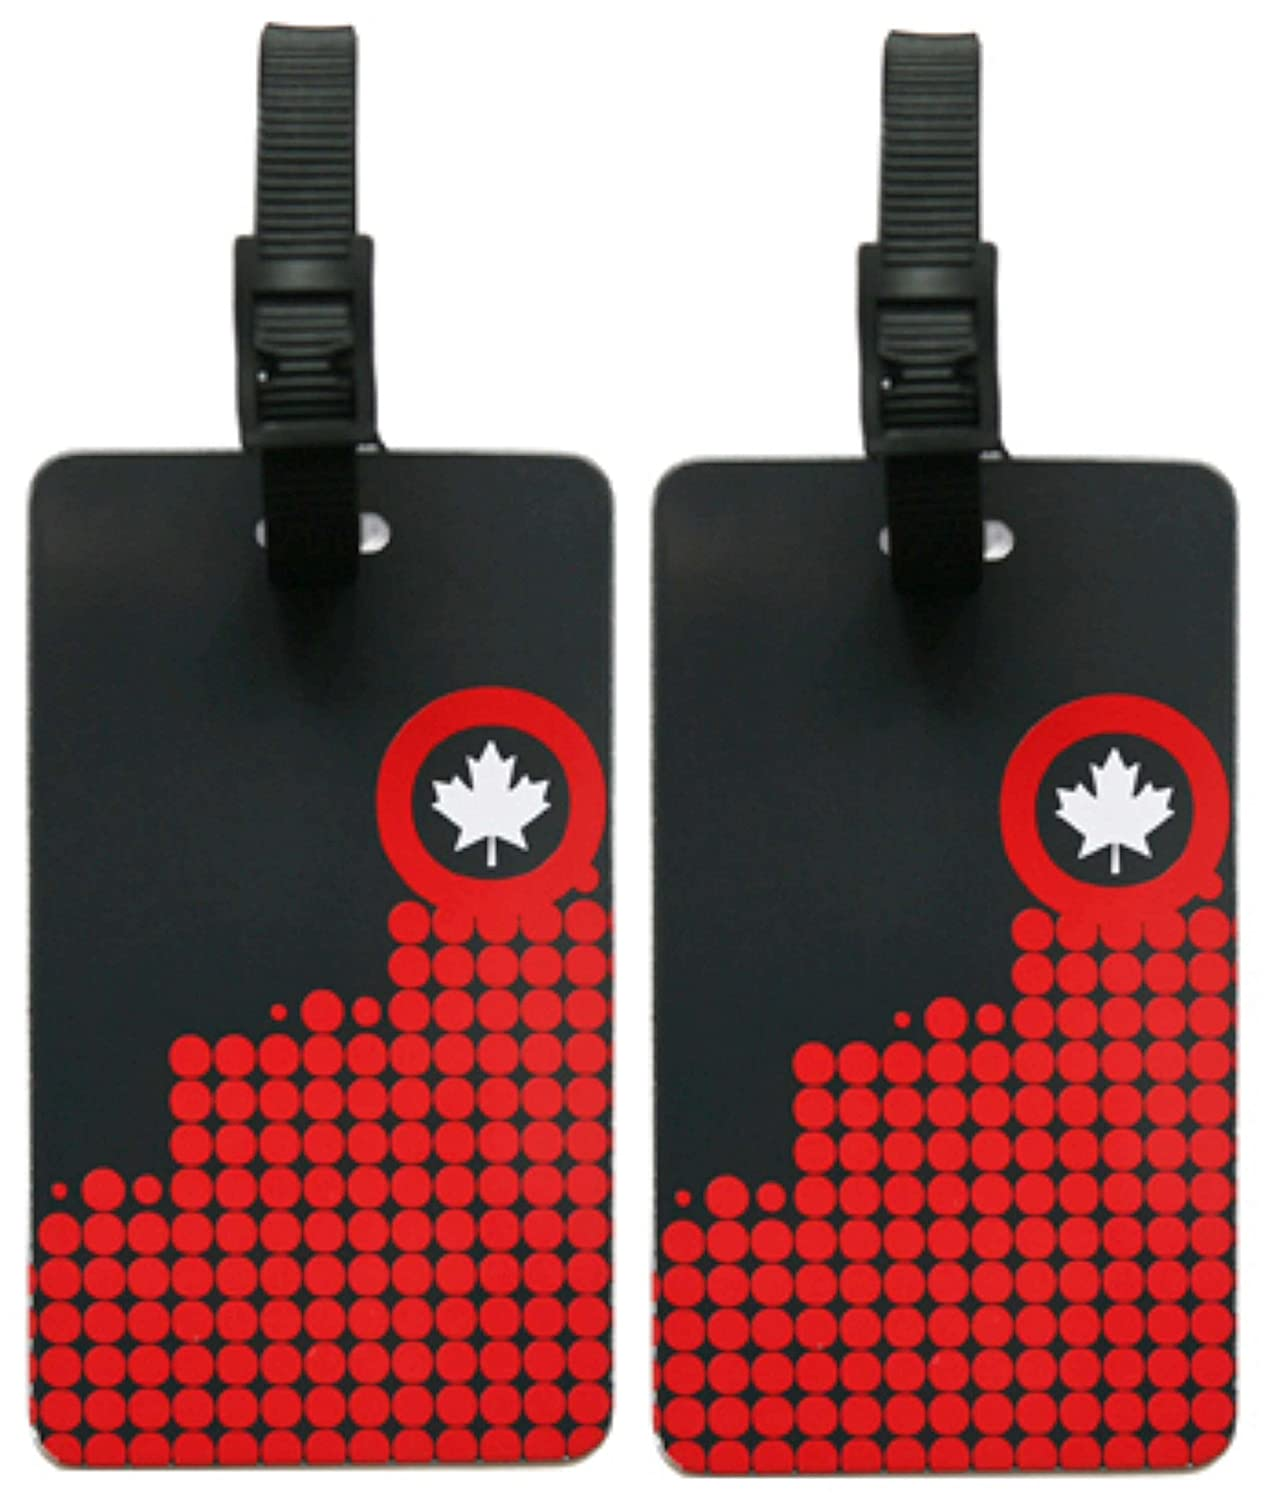 ORB Travel-EM203-CANADA 150-Multi-Colour-2-Pack Luggage Name Tags ID Label Set of 2 Tags Business Card Suitcase Label